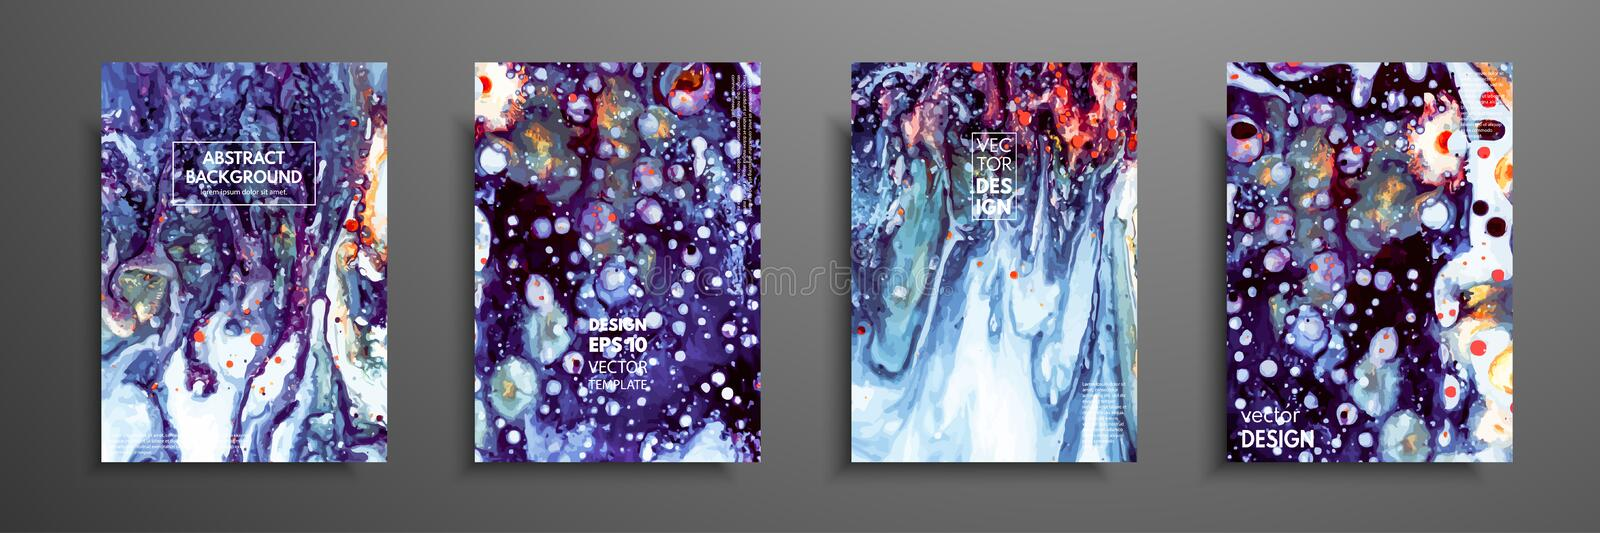 Colorful covers design set with textures. Closeup of the painting. Abstract bright hand painted background, fluid stock illustration